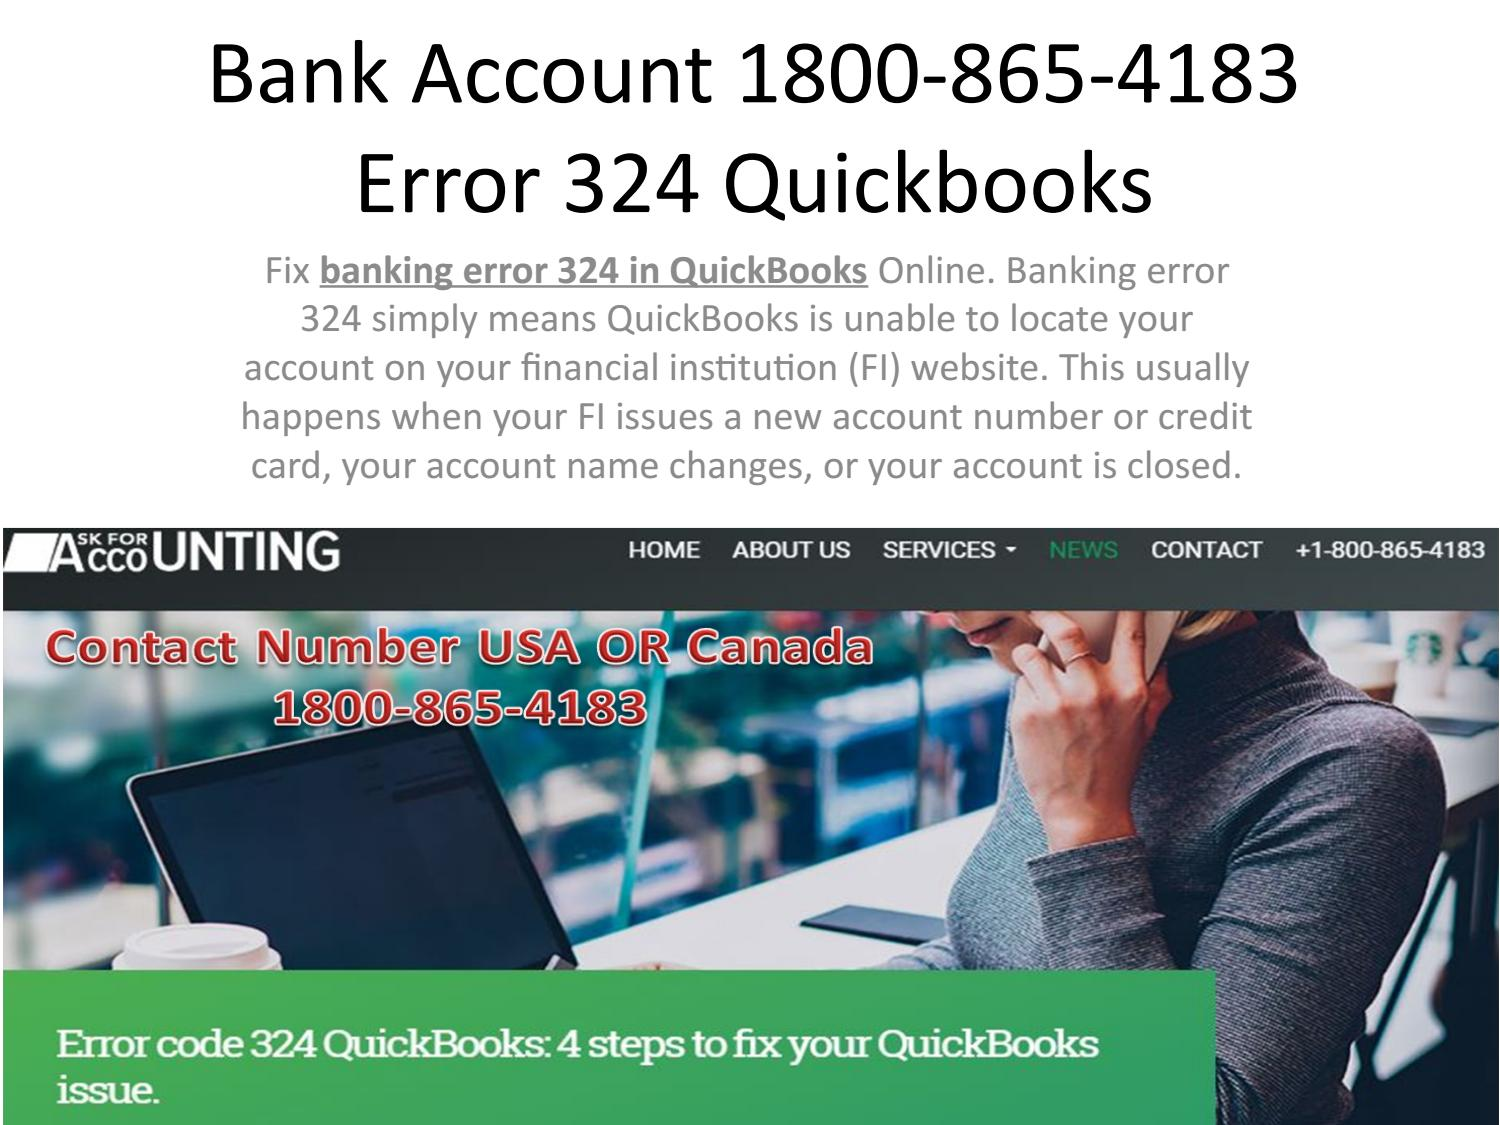 Bank account 1800-865-4183 error 324 quickbooks by Used Auto Parts